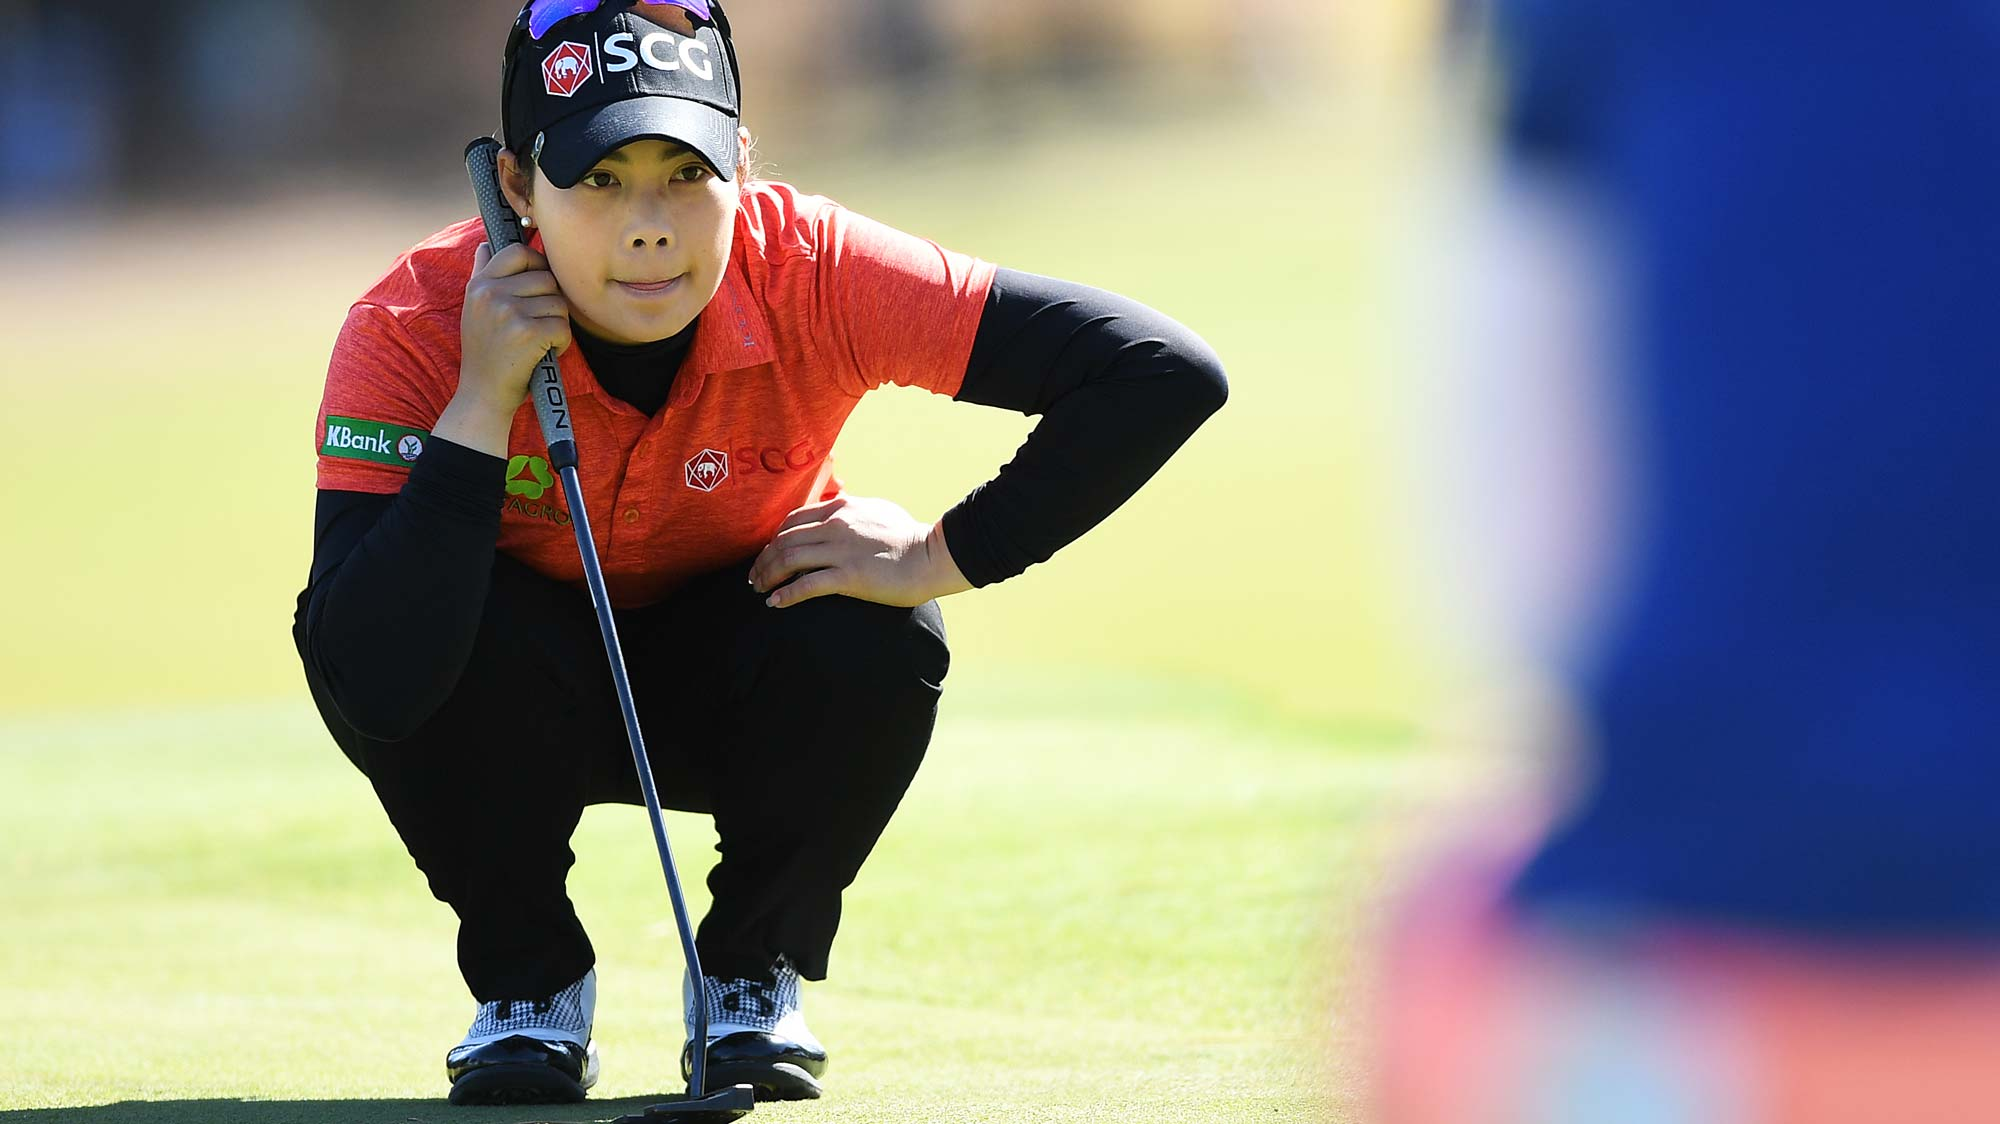 Moriya Jutanugarn of Thailand lines up a put during day one of the 2019 ISPS Handa Women's Australian Open